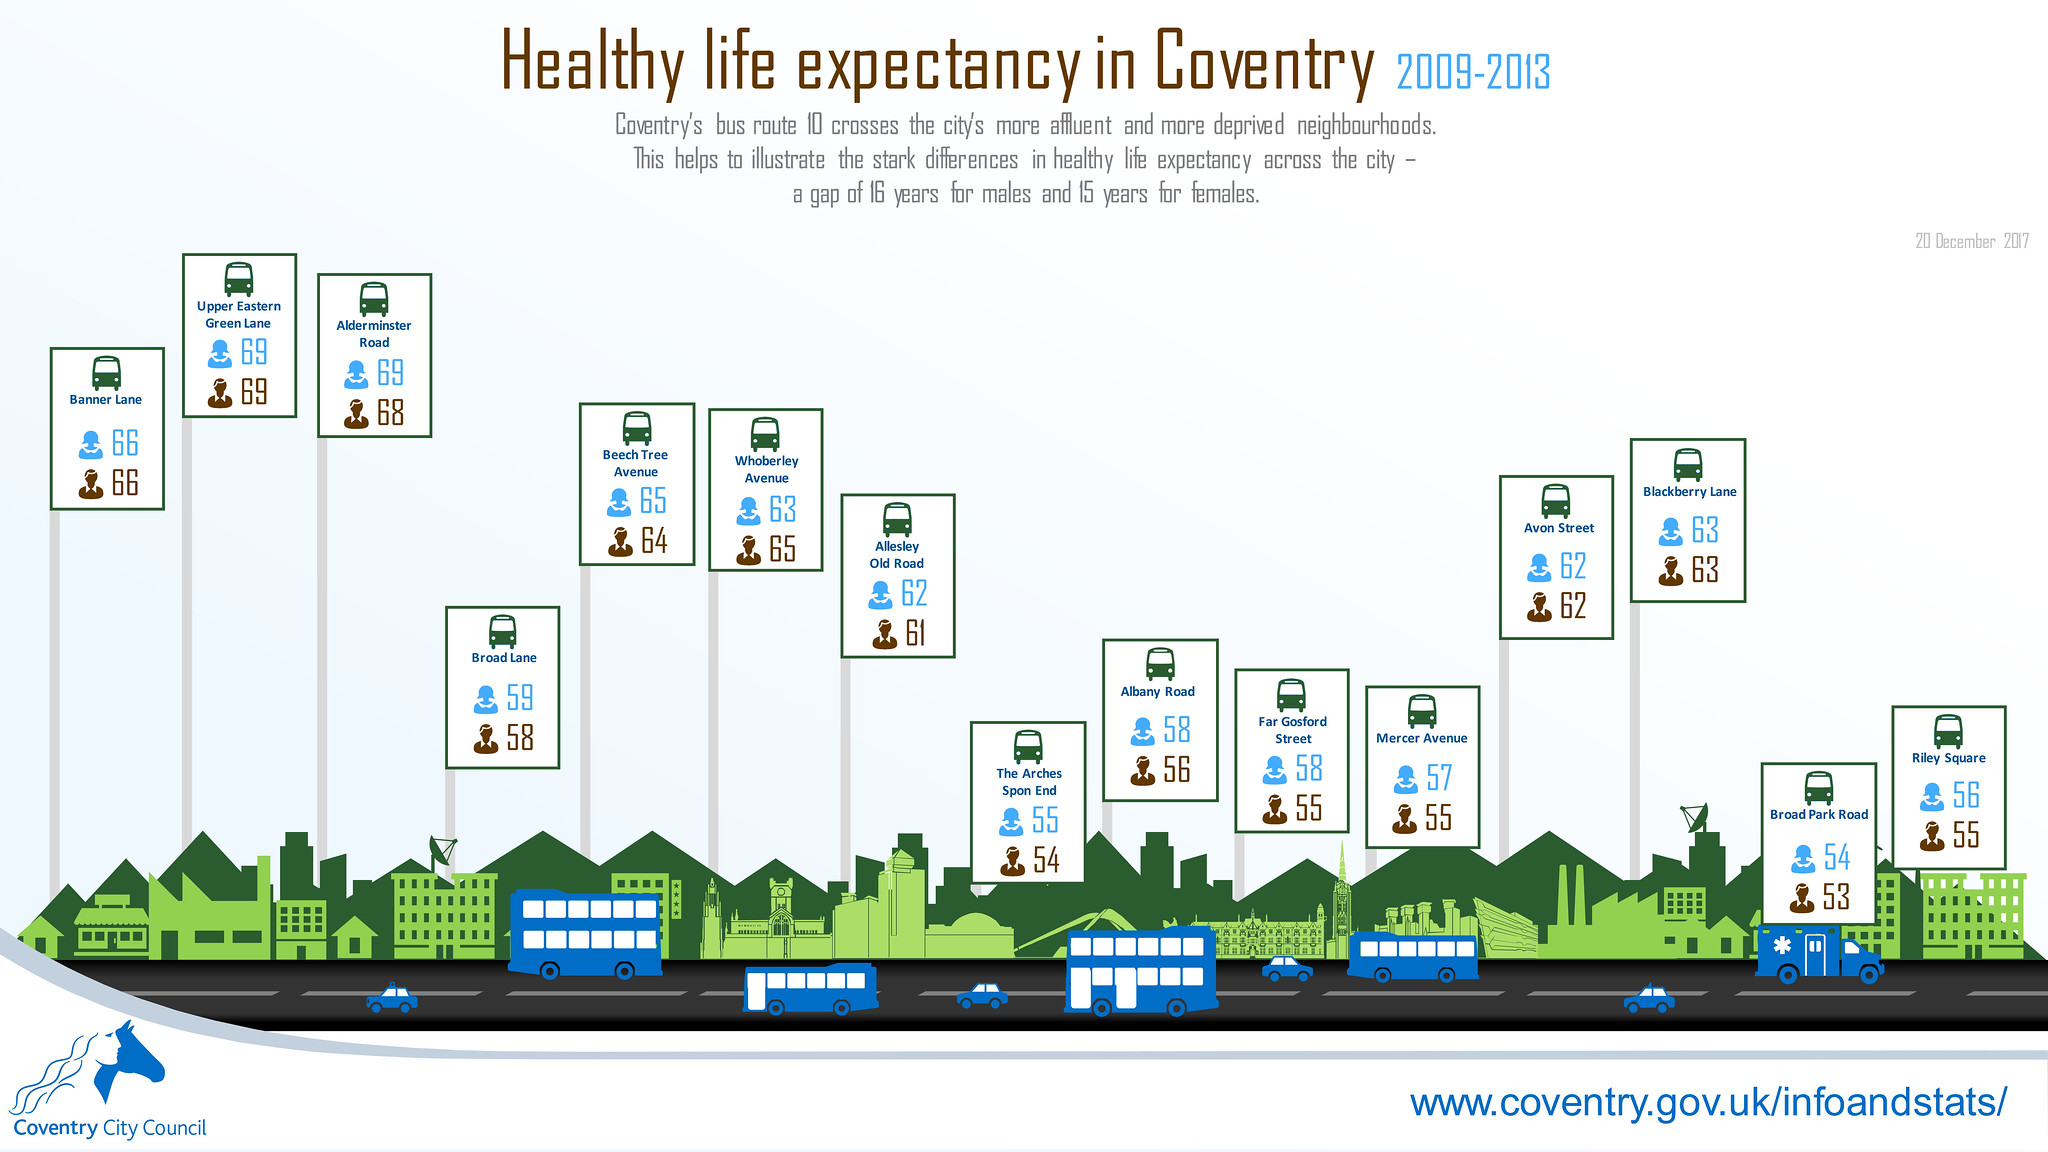 Healthy life expectancy along Coventry bus route 10 infographic (December 2017)